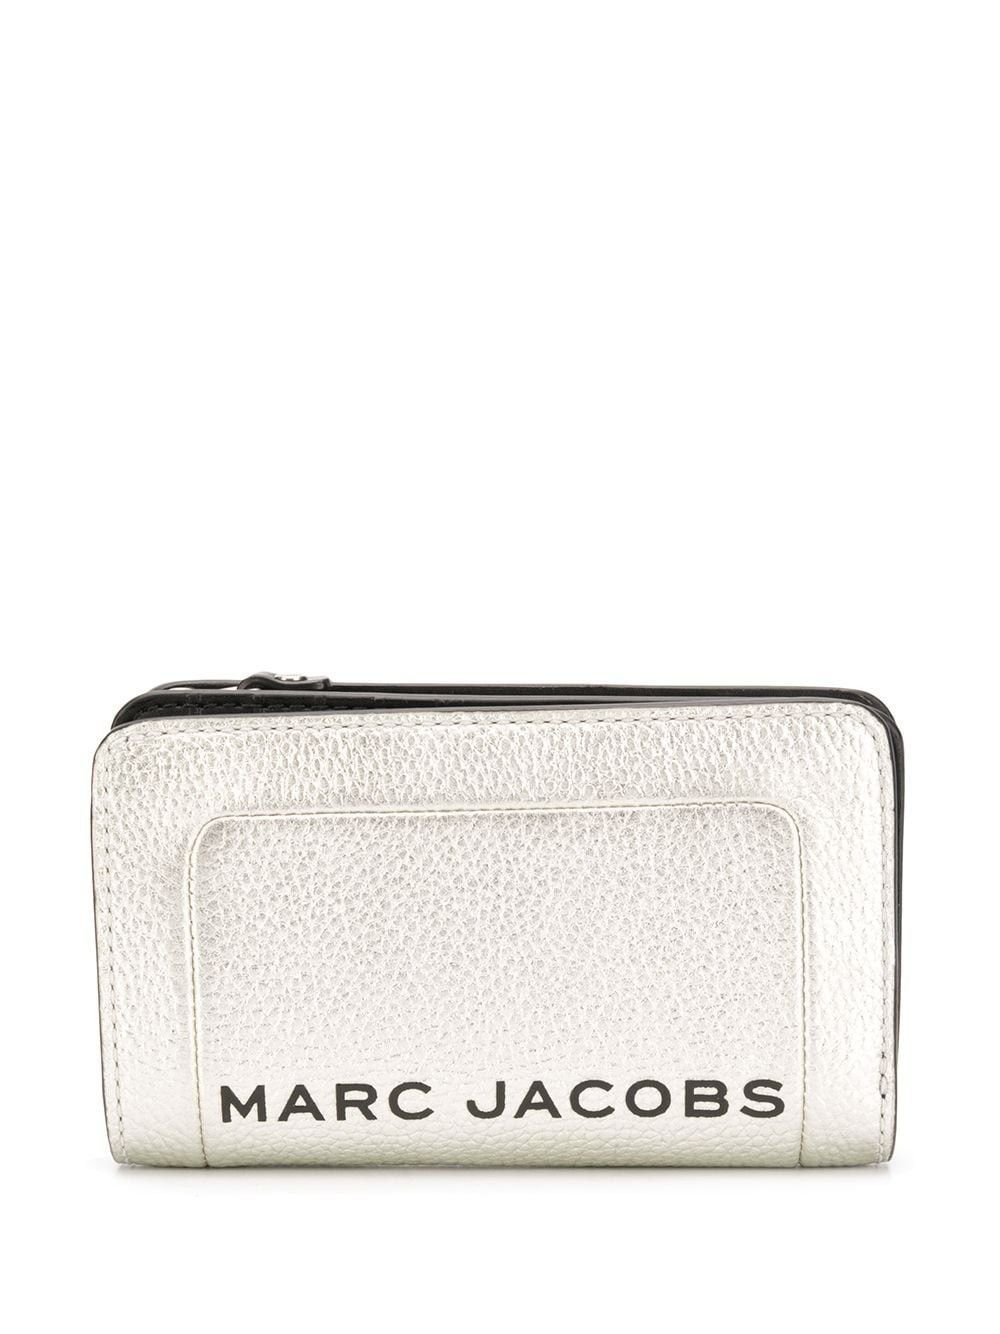 MARC JACOBS WOMEN'S M0016185045 SILVER LEATHER WALLET